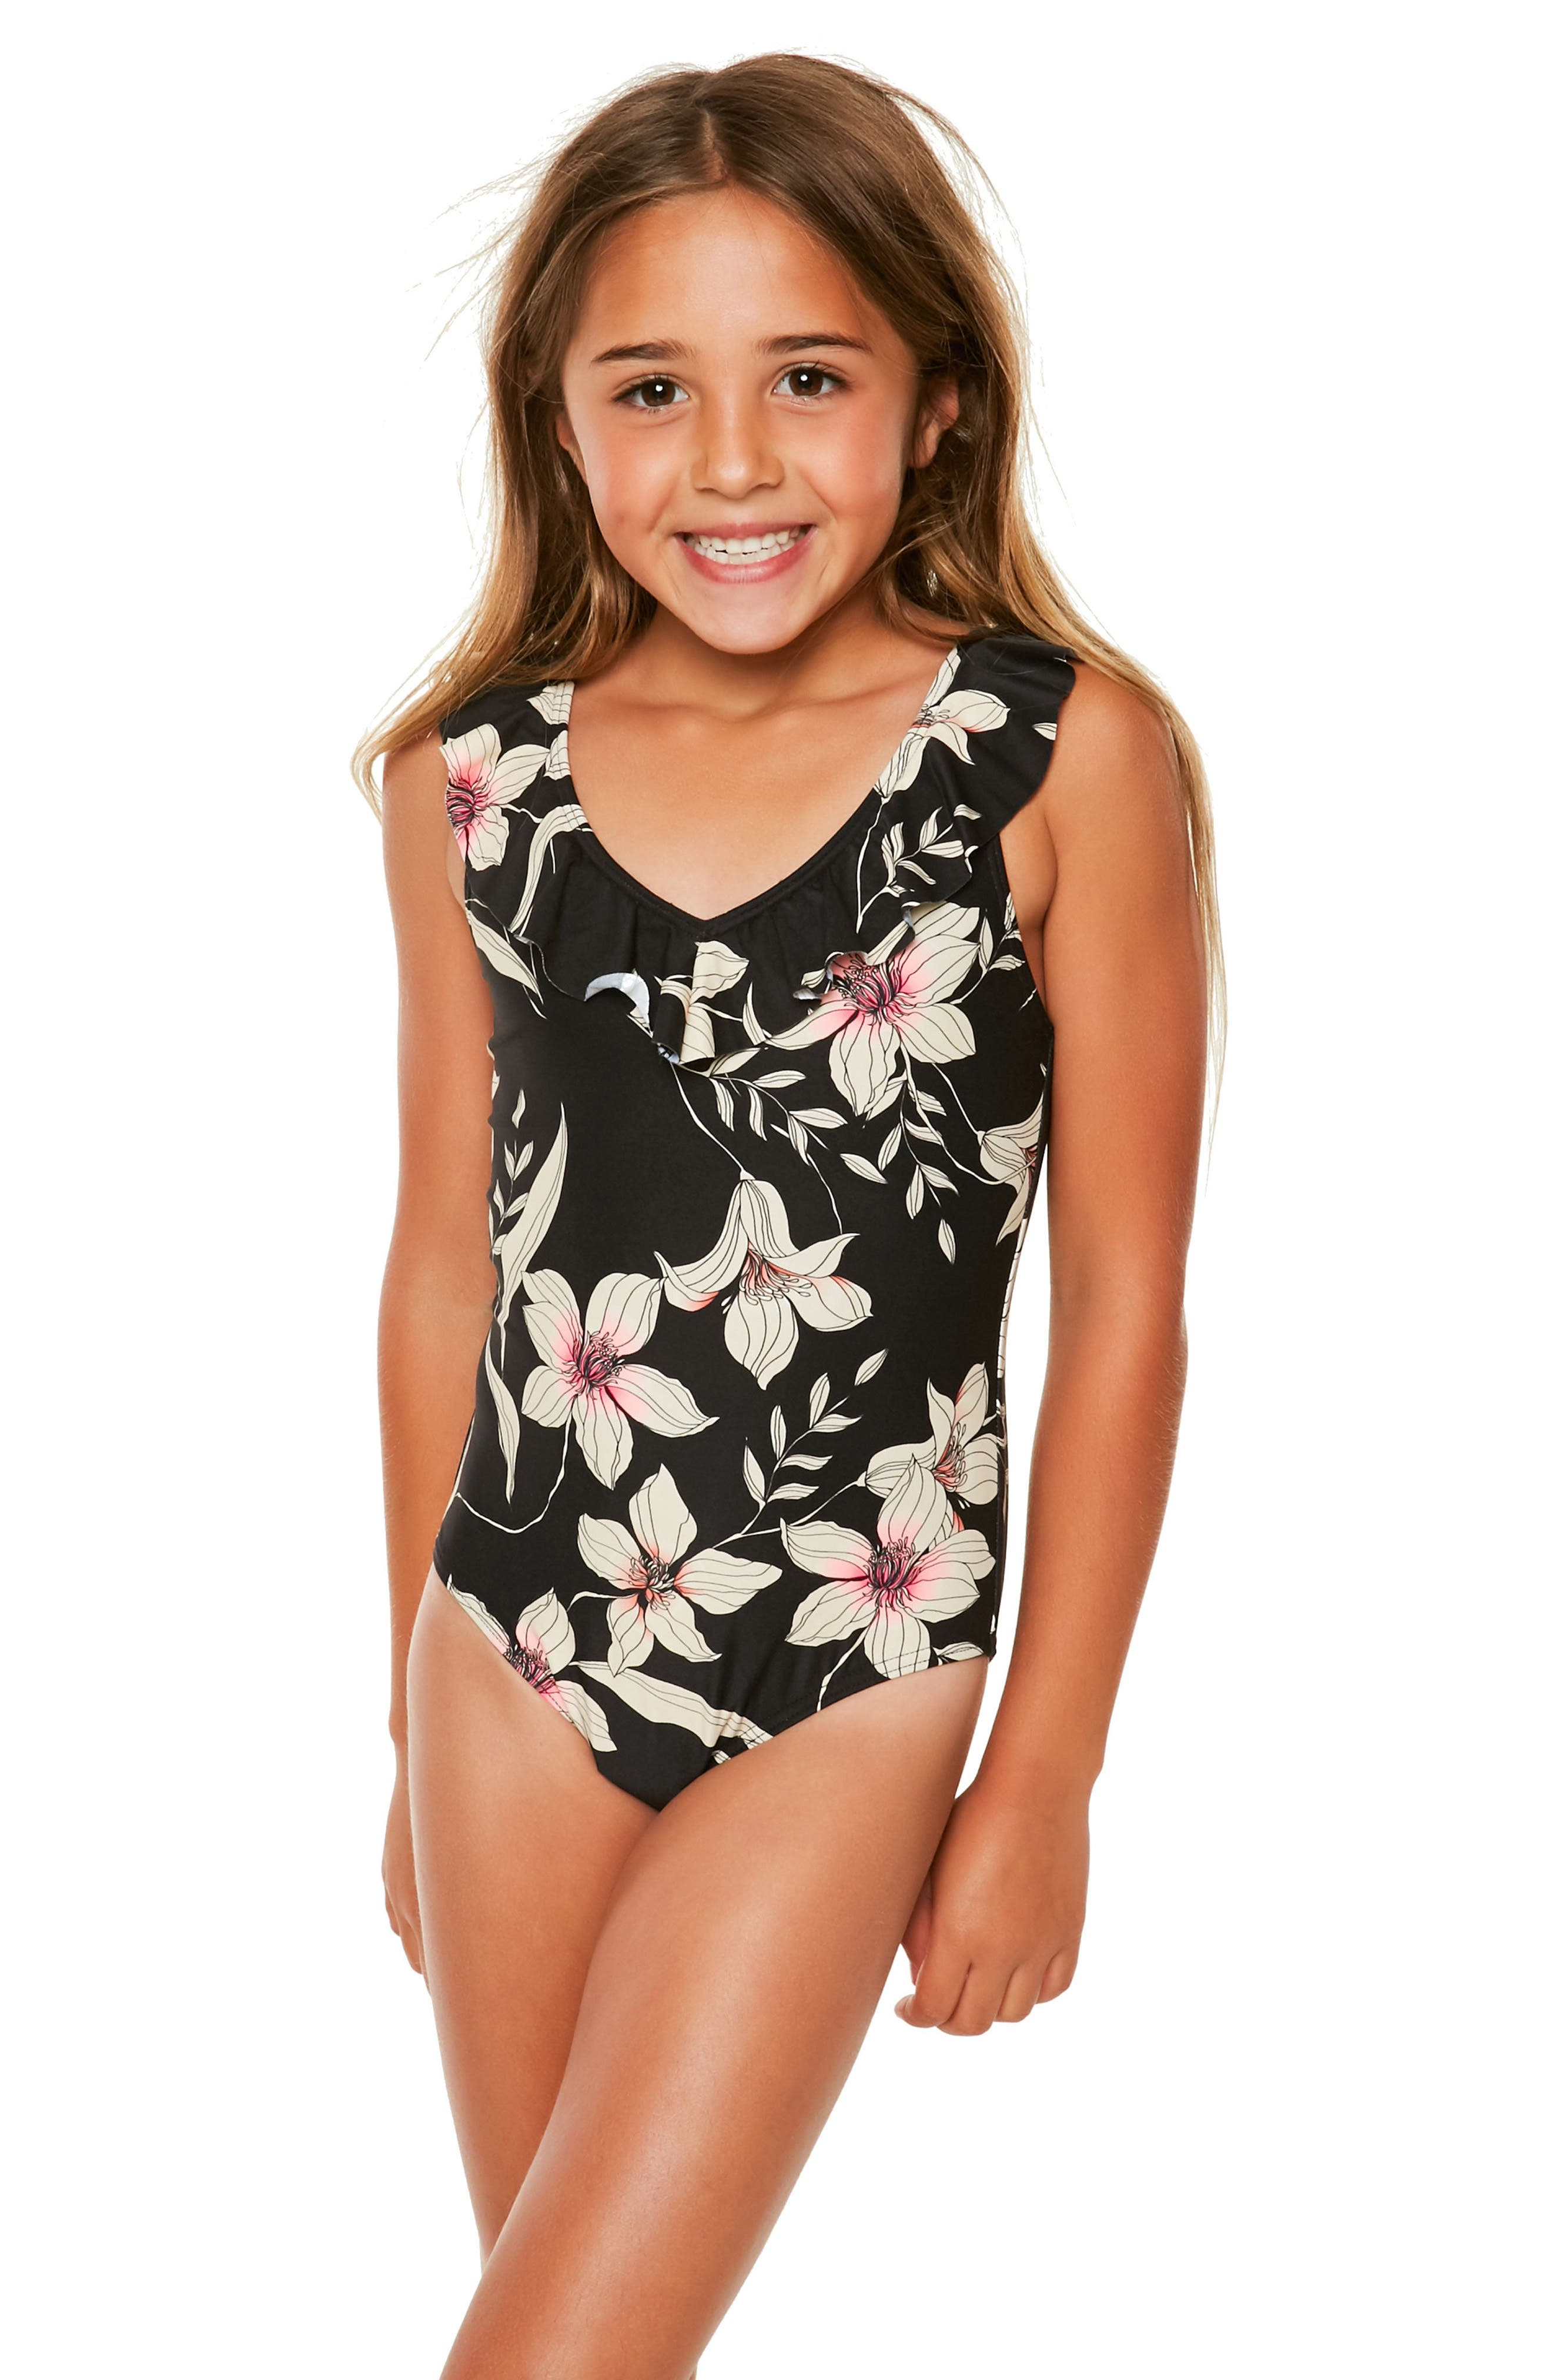 Main Image - O'Neill Albany Ruffle One-Piece Swimsuit (Toddler Girls & Little Girls)